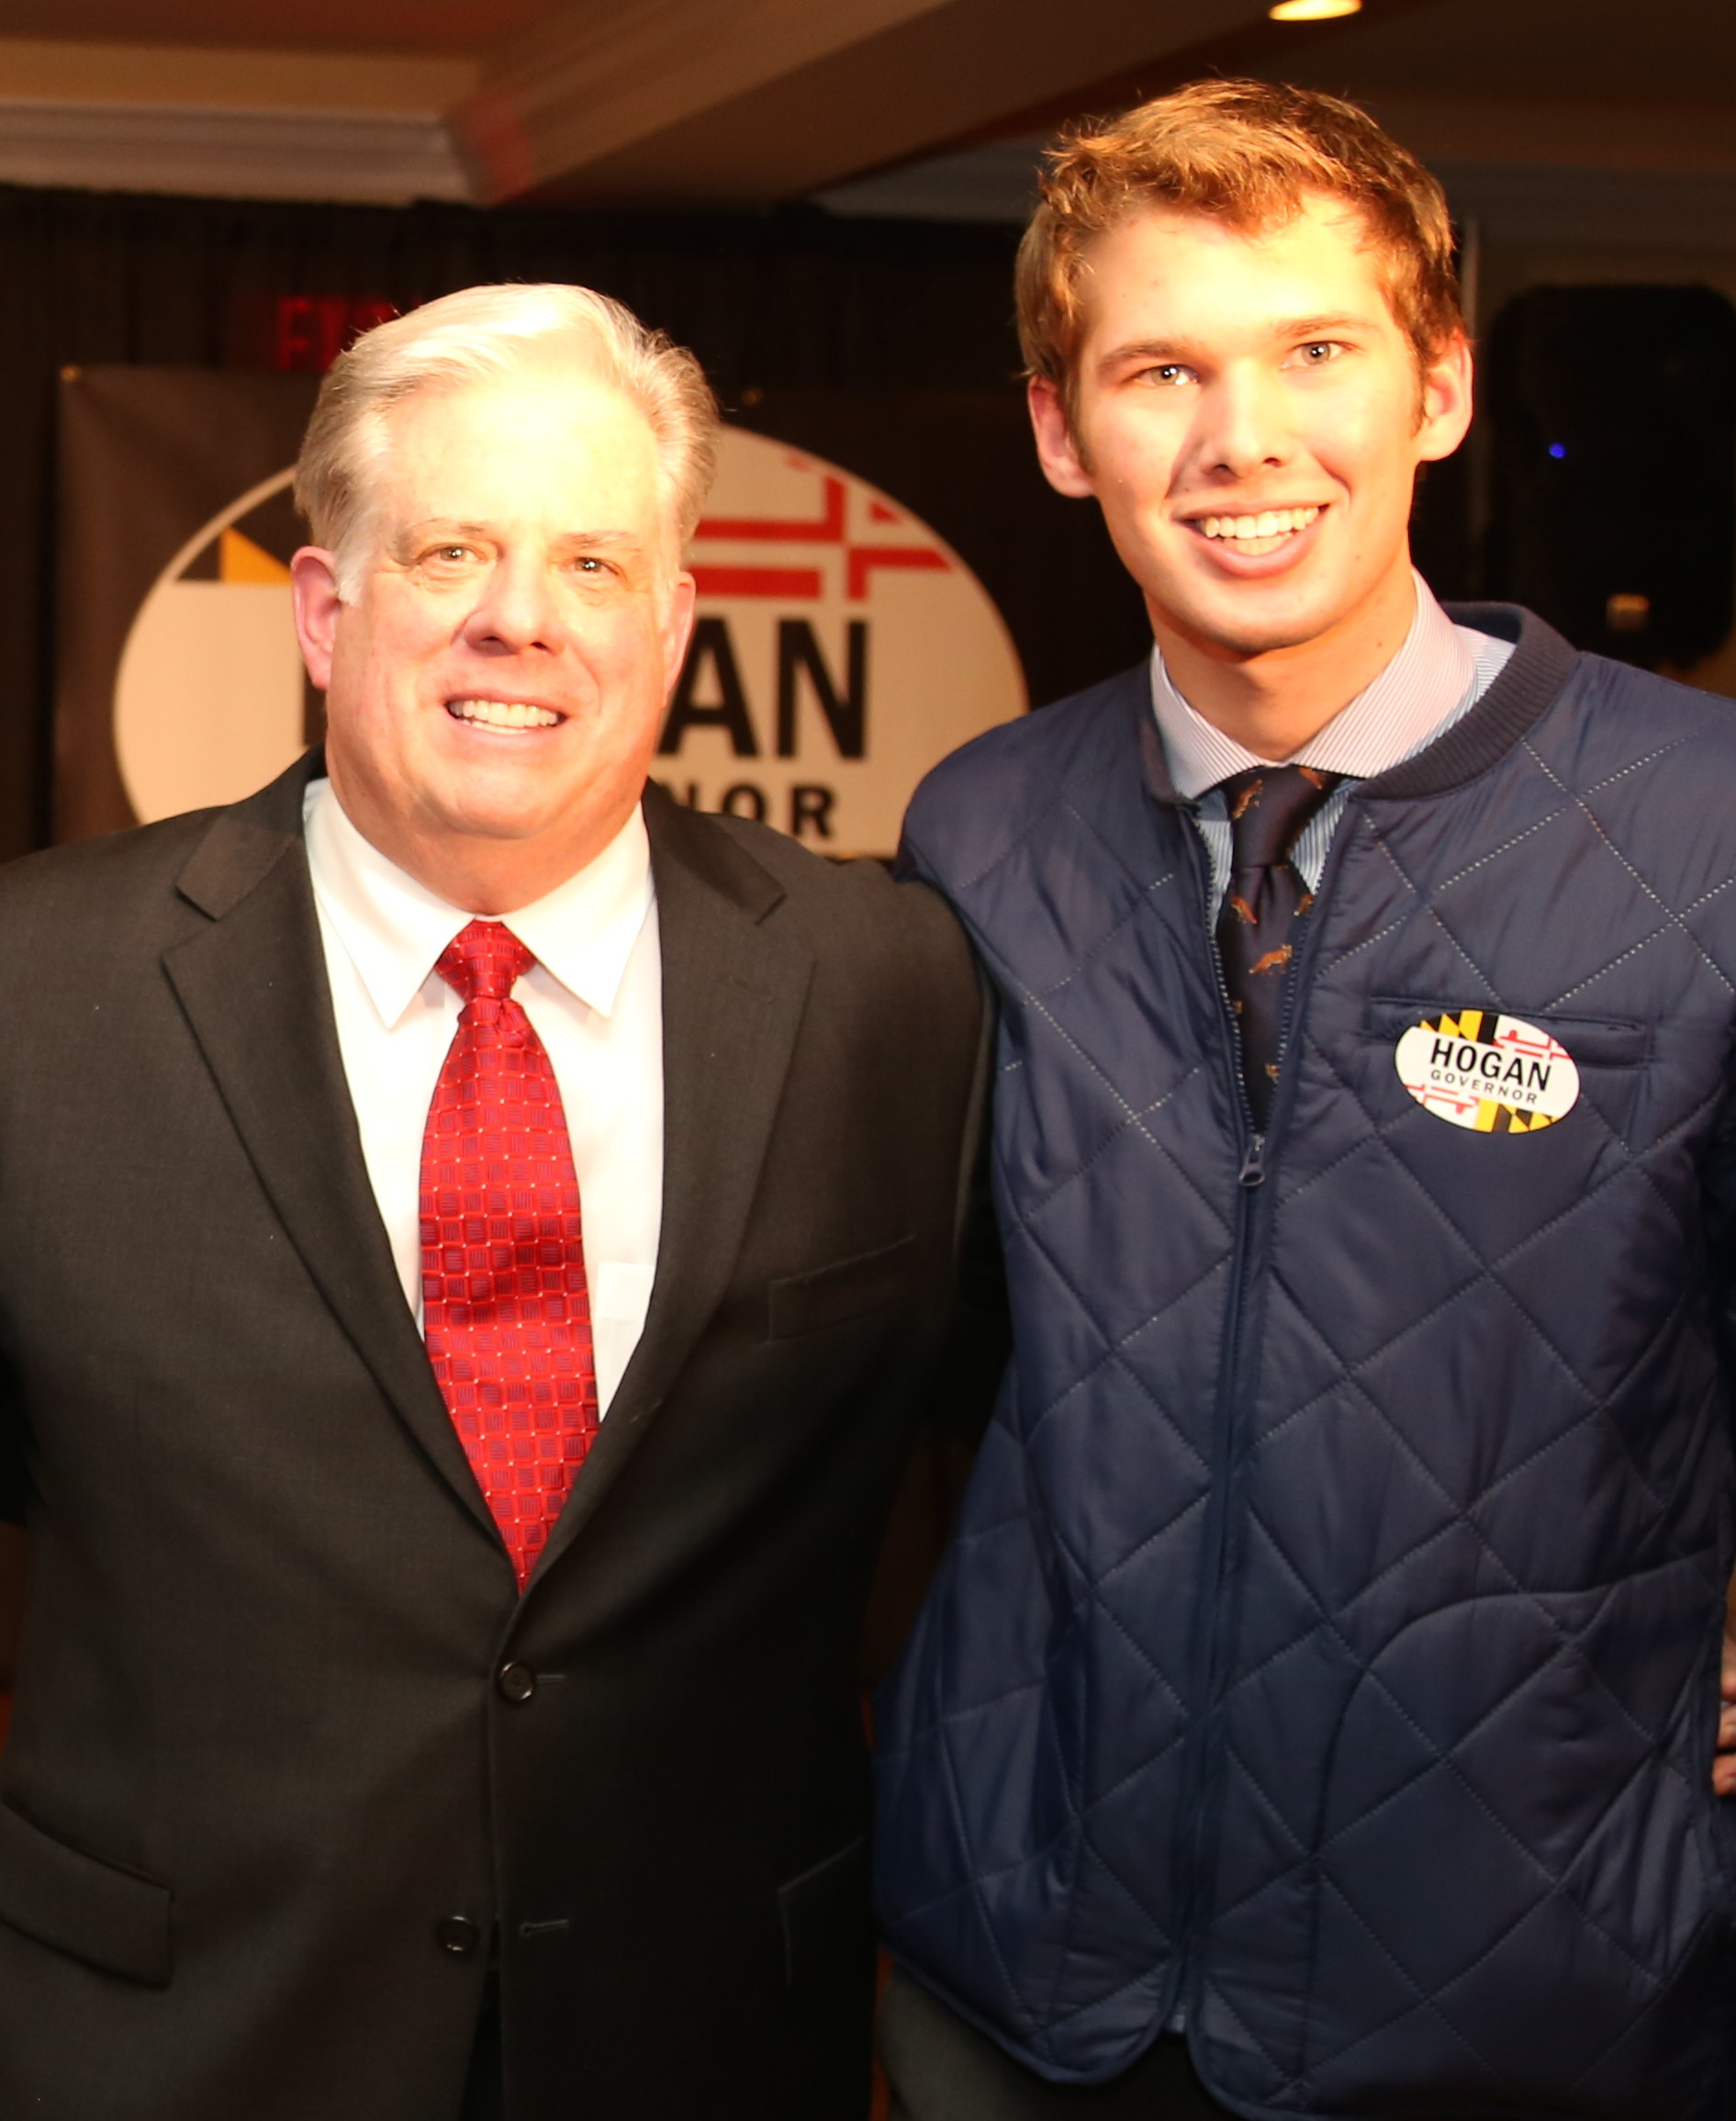 Jake and Governor Larry Hogan. January 2014